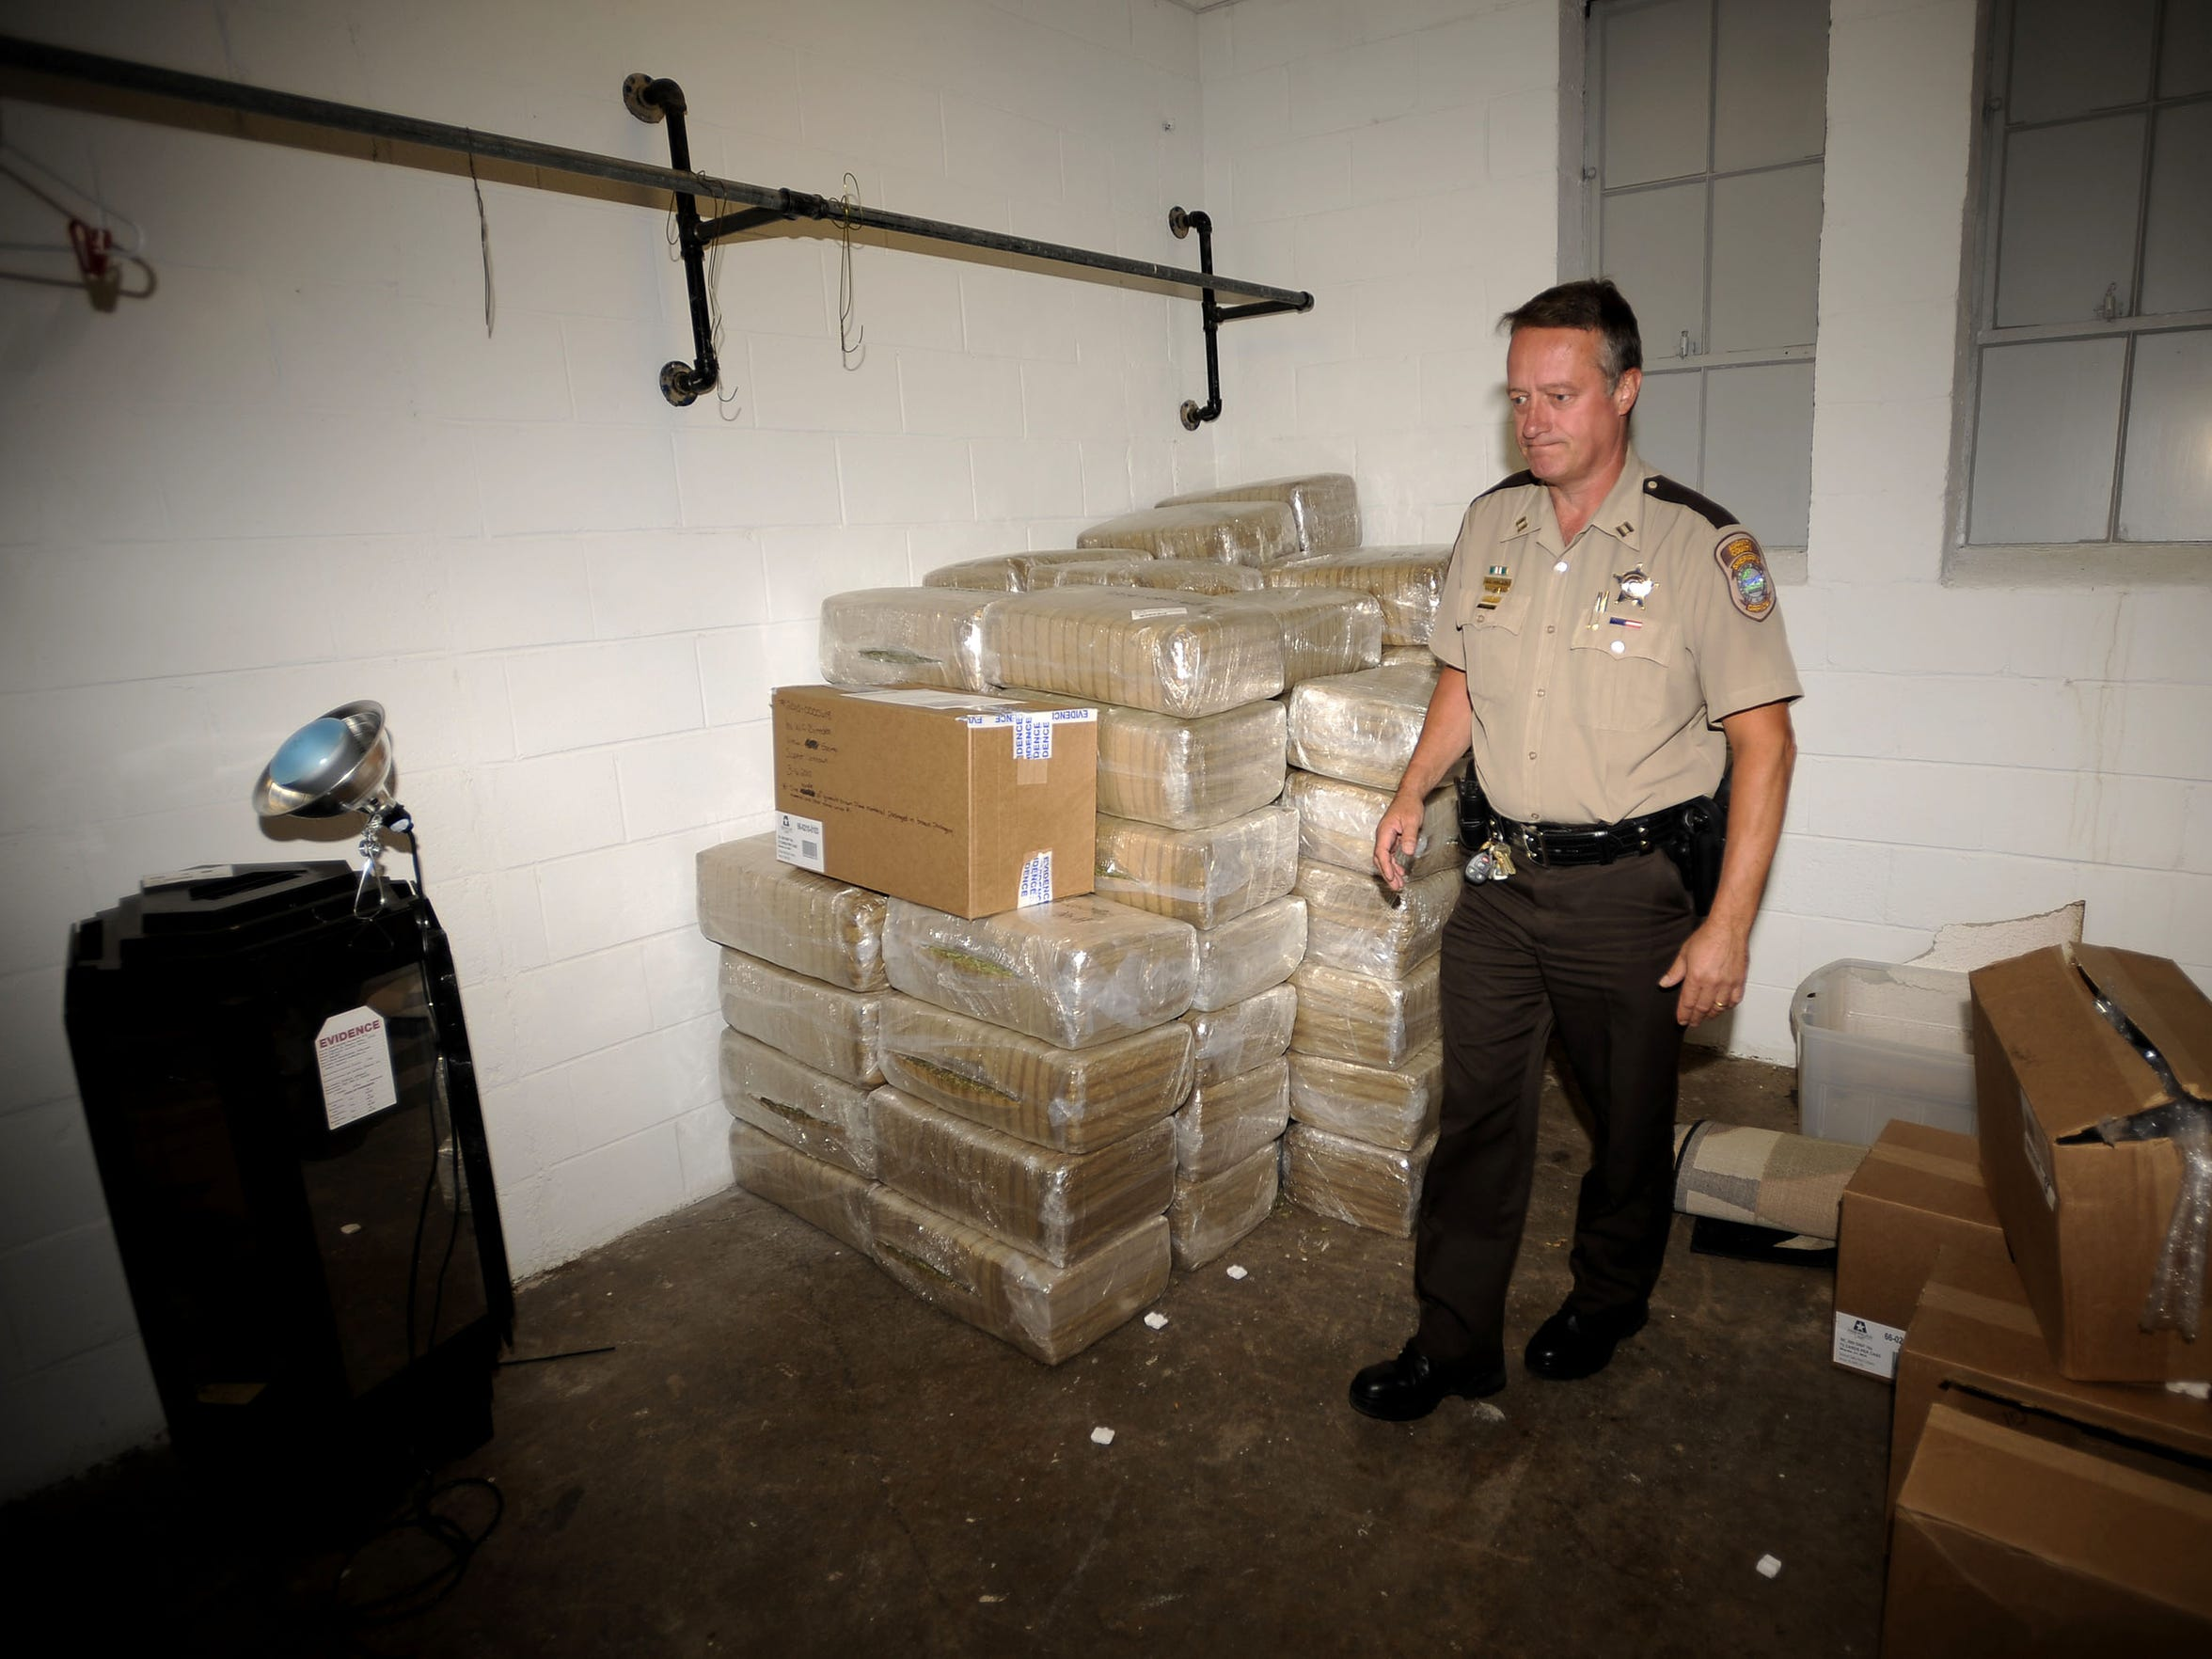 A file photo of the sheriff's evidence room from 2010